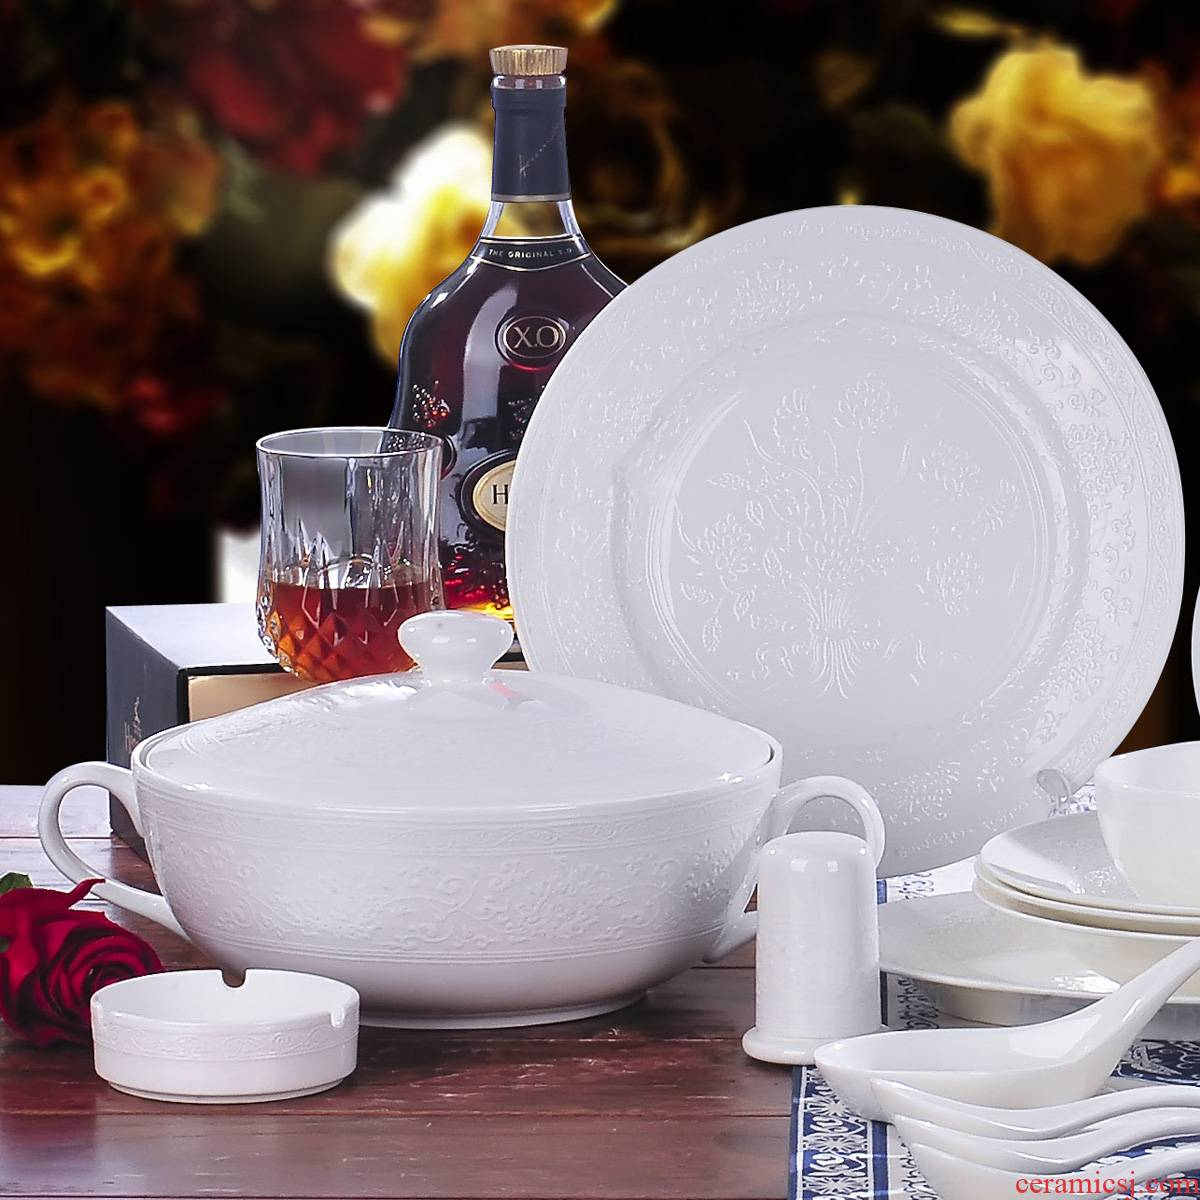 Red xin 56 head of jingdezhen ceramic tableware suit to use dishes Chinese porcelain tableware ceramic bowl white reliefs